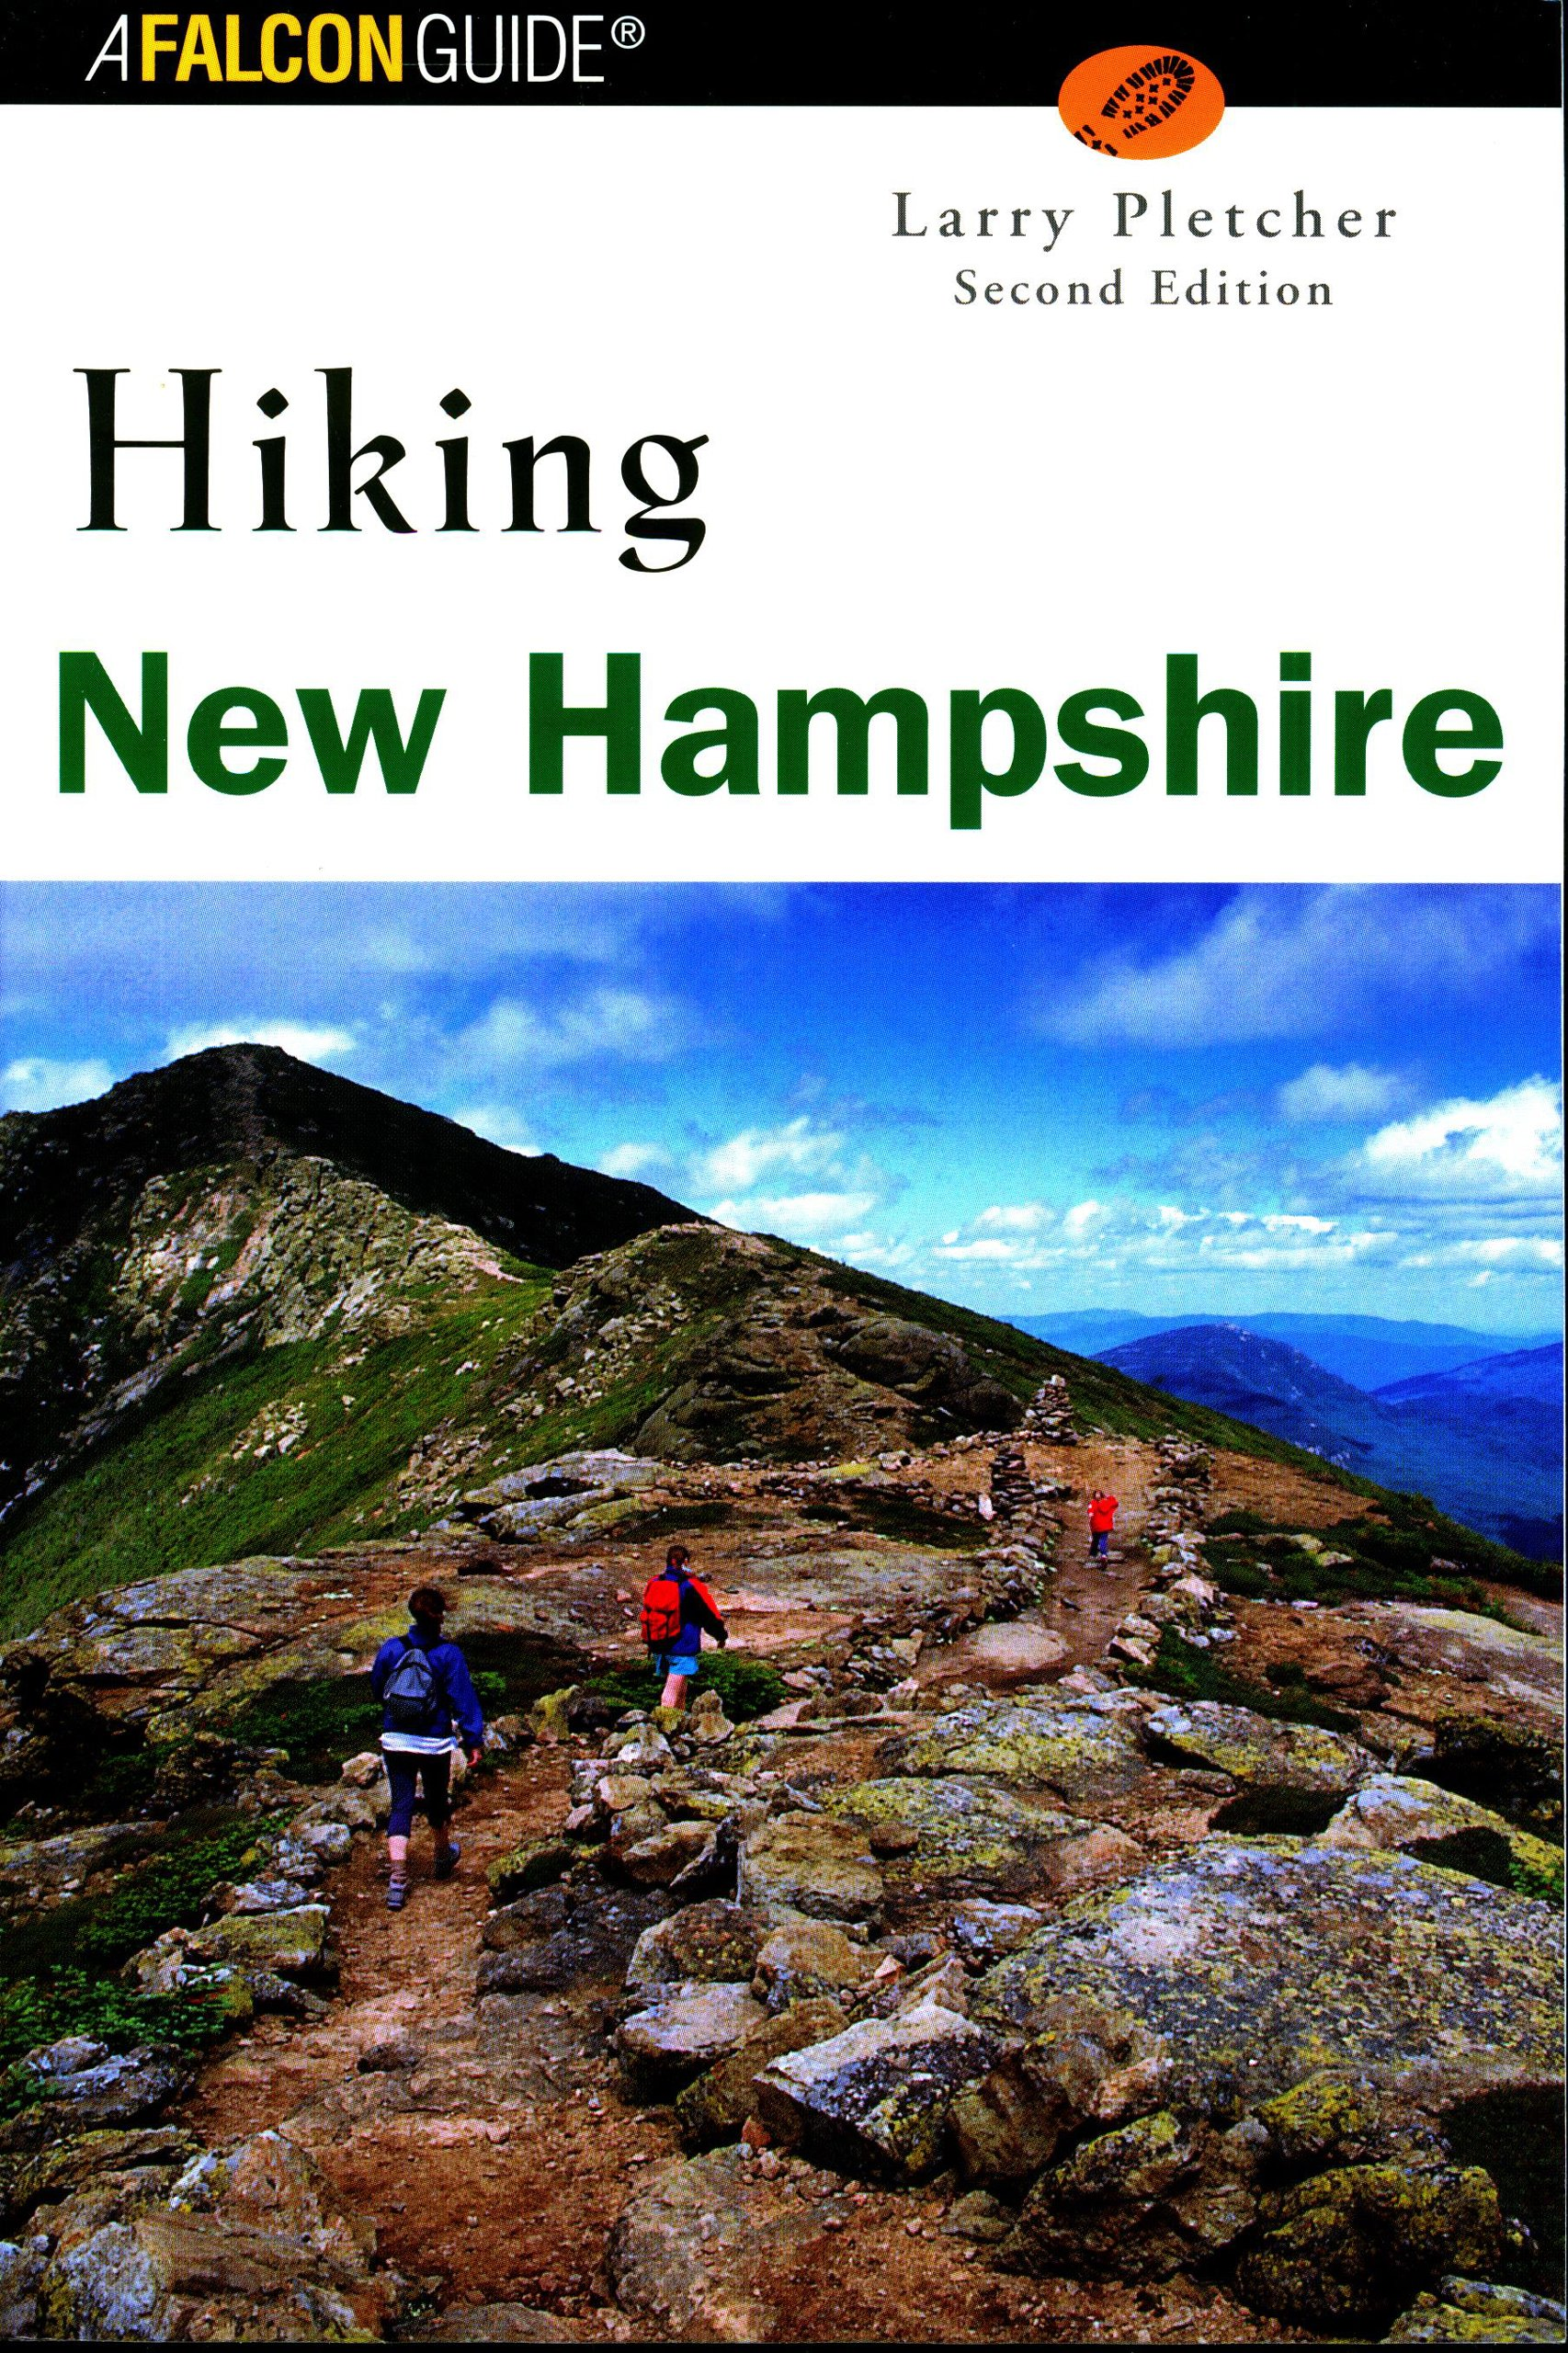 new hampshire hiking maps Hiking New Hampshire 2nd State Hiking Guides Series Pletcher new hampshire hiking maps